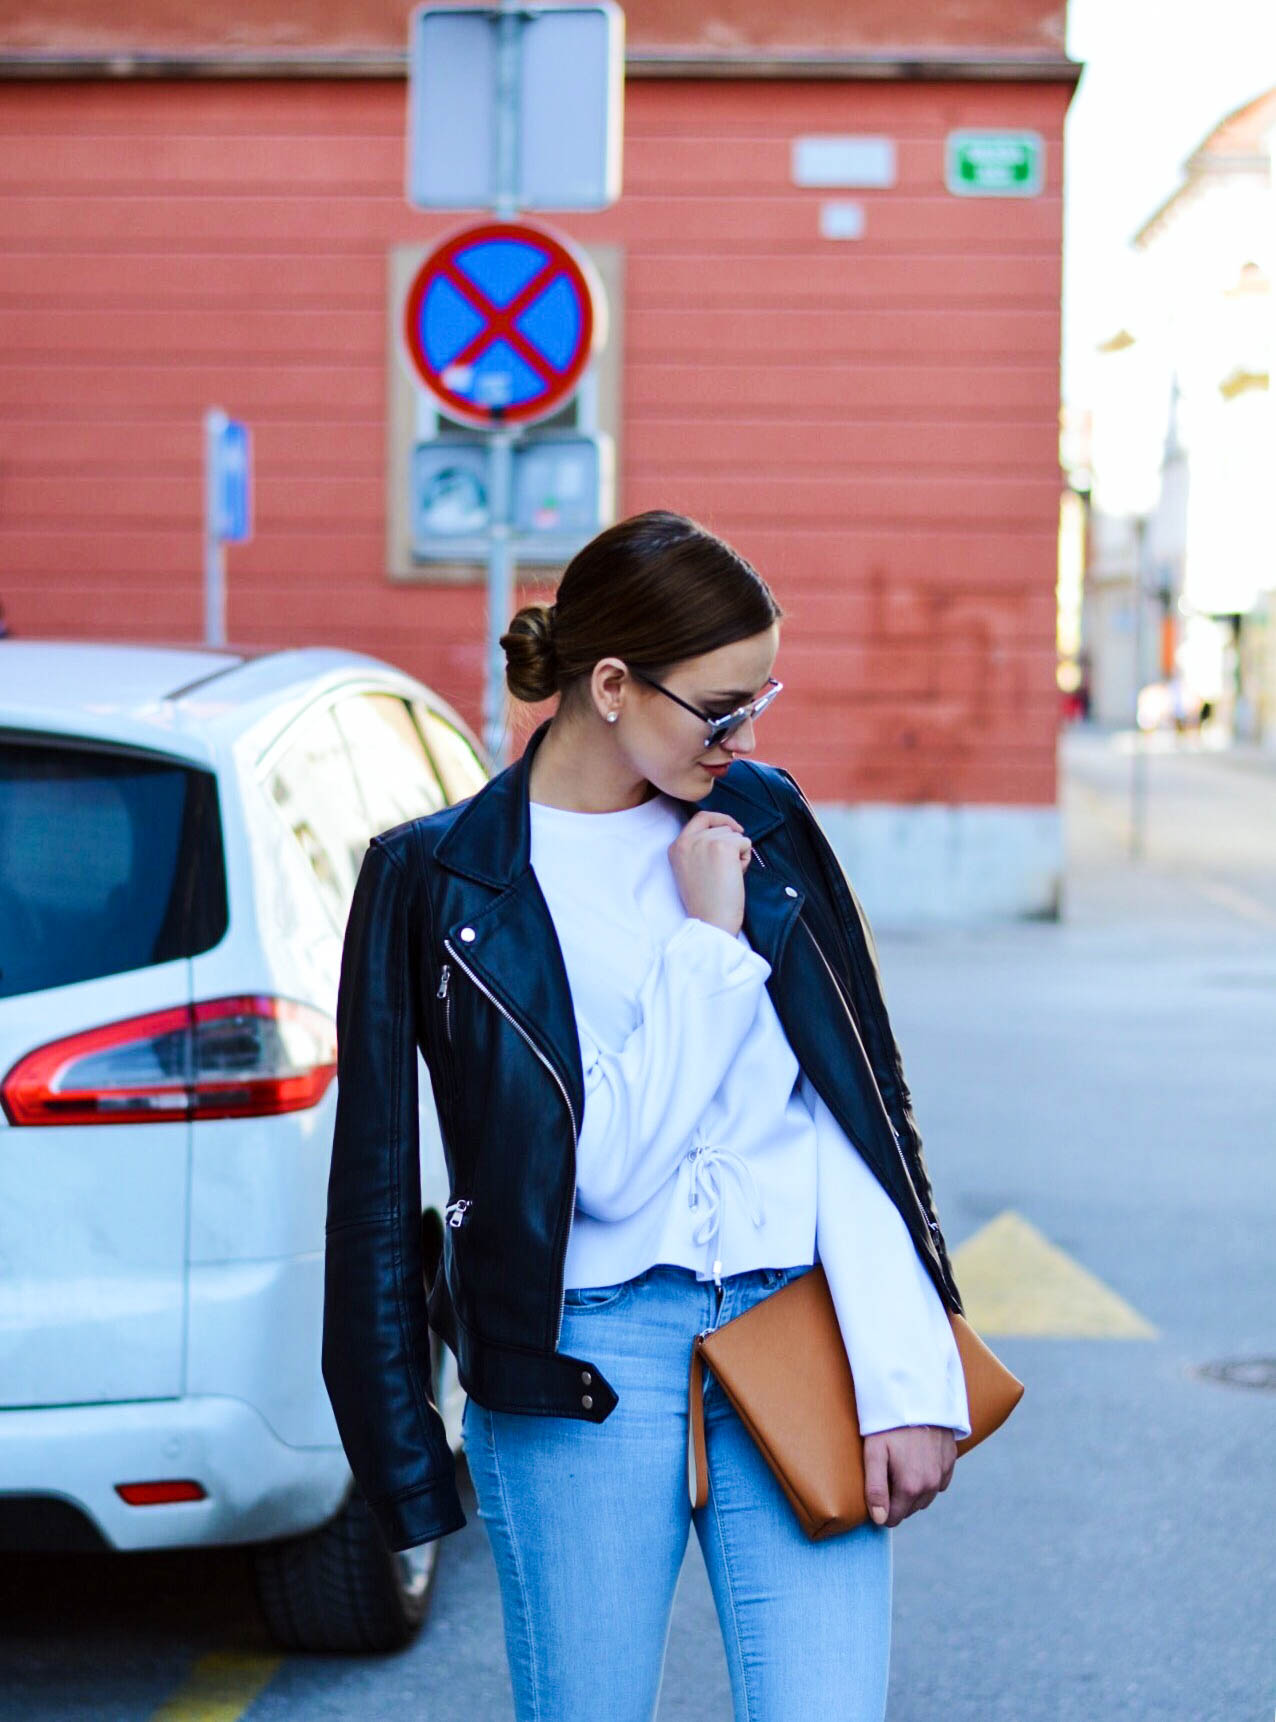 SHIRT  STRADIVARIUS  / JACKET & SHOES  ZARA  / JEANS  H&M  / BAG  C&A  / GLASSES  DIOR  / SOCKS  CALZEDONIA